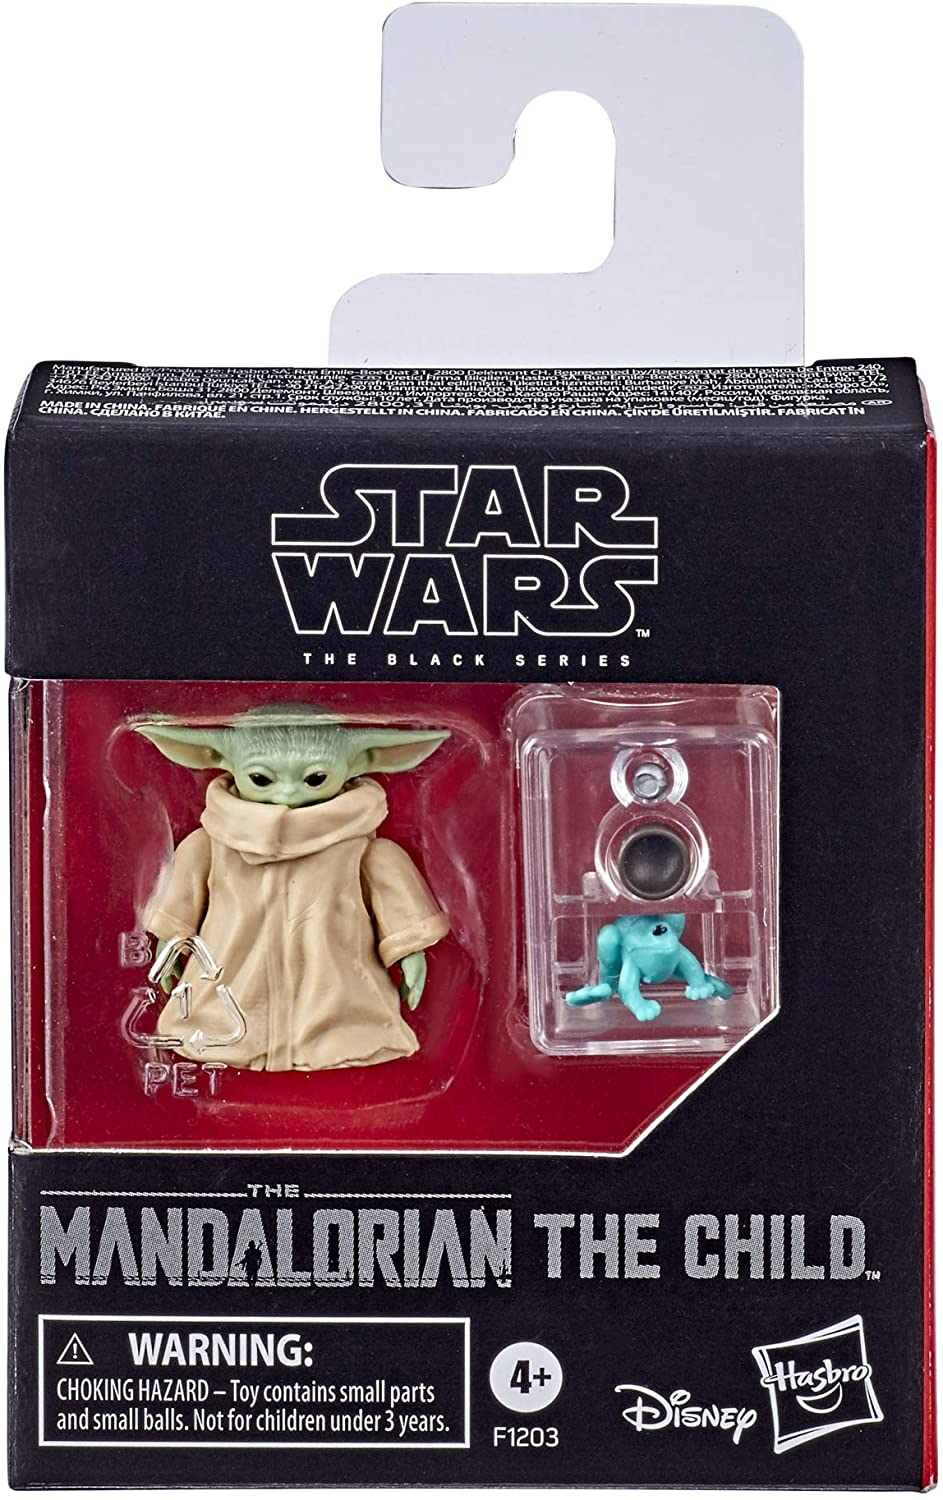 Star Wars The Black Series The Child Toy 1.1-Inch Figure Mandalorian Baby Yoda